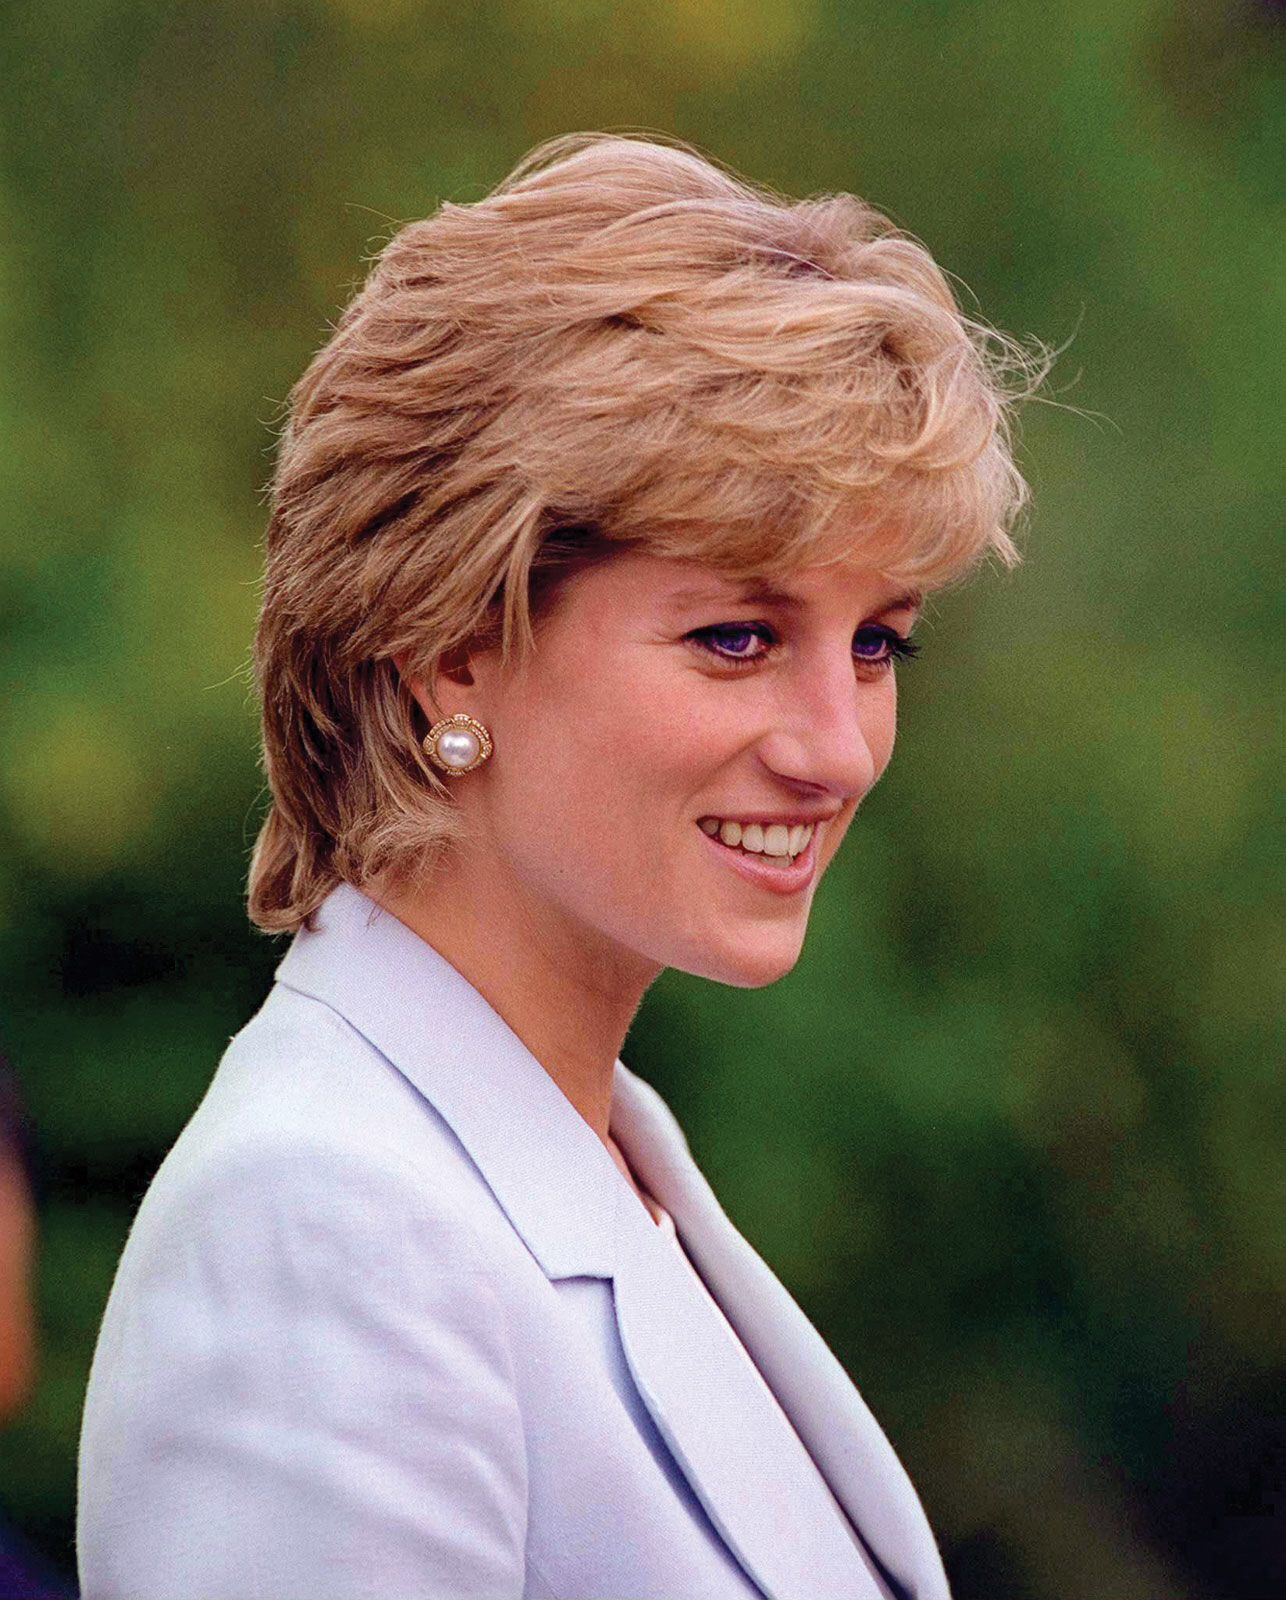 Pin by Sarah CarolAnn Broaddus on Diana Princess of Wales